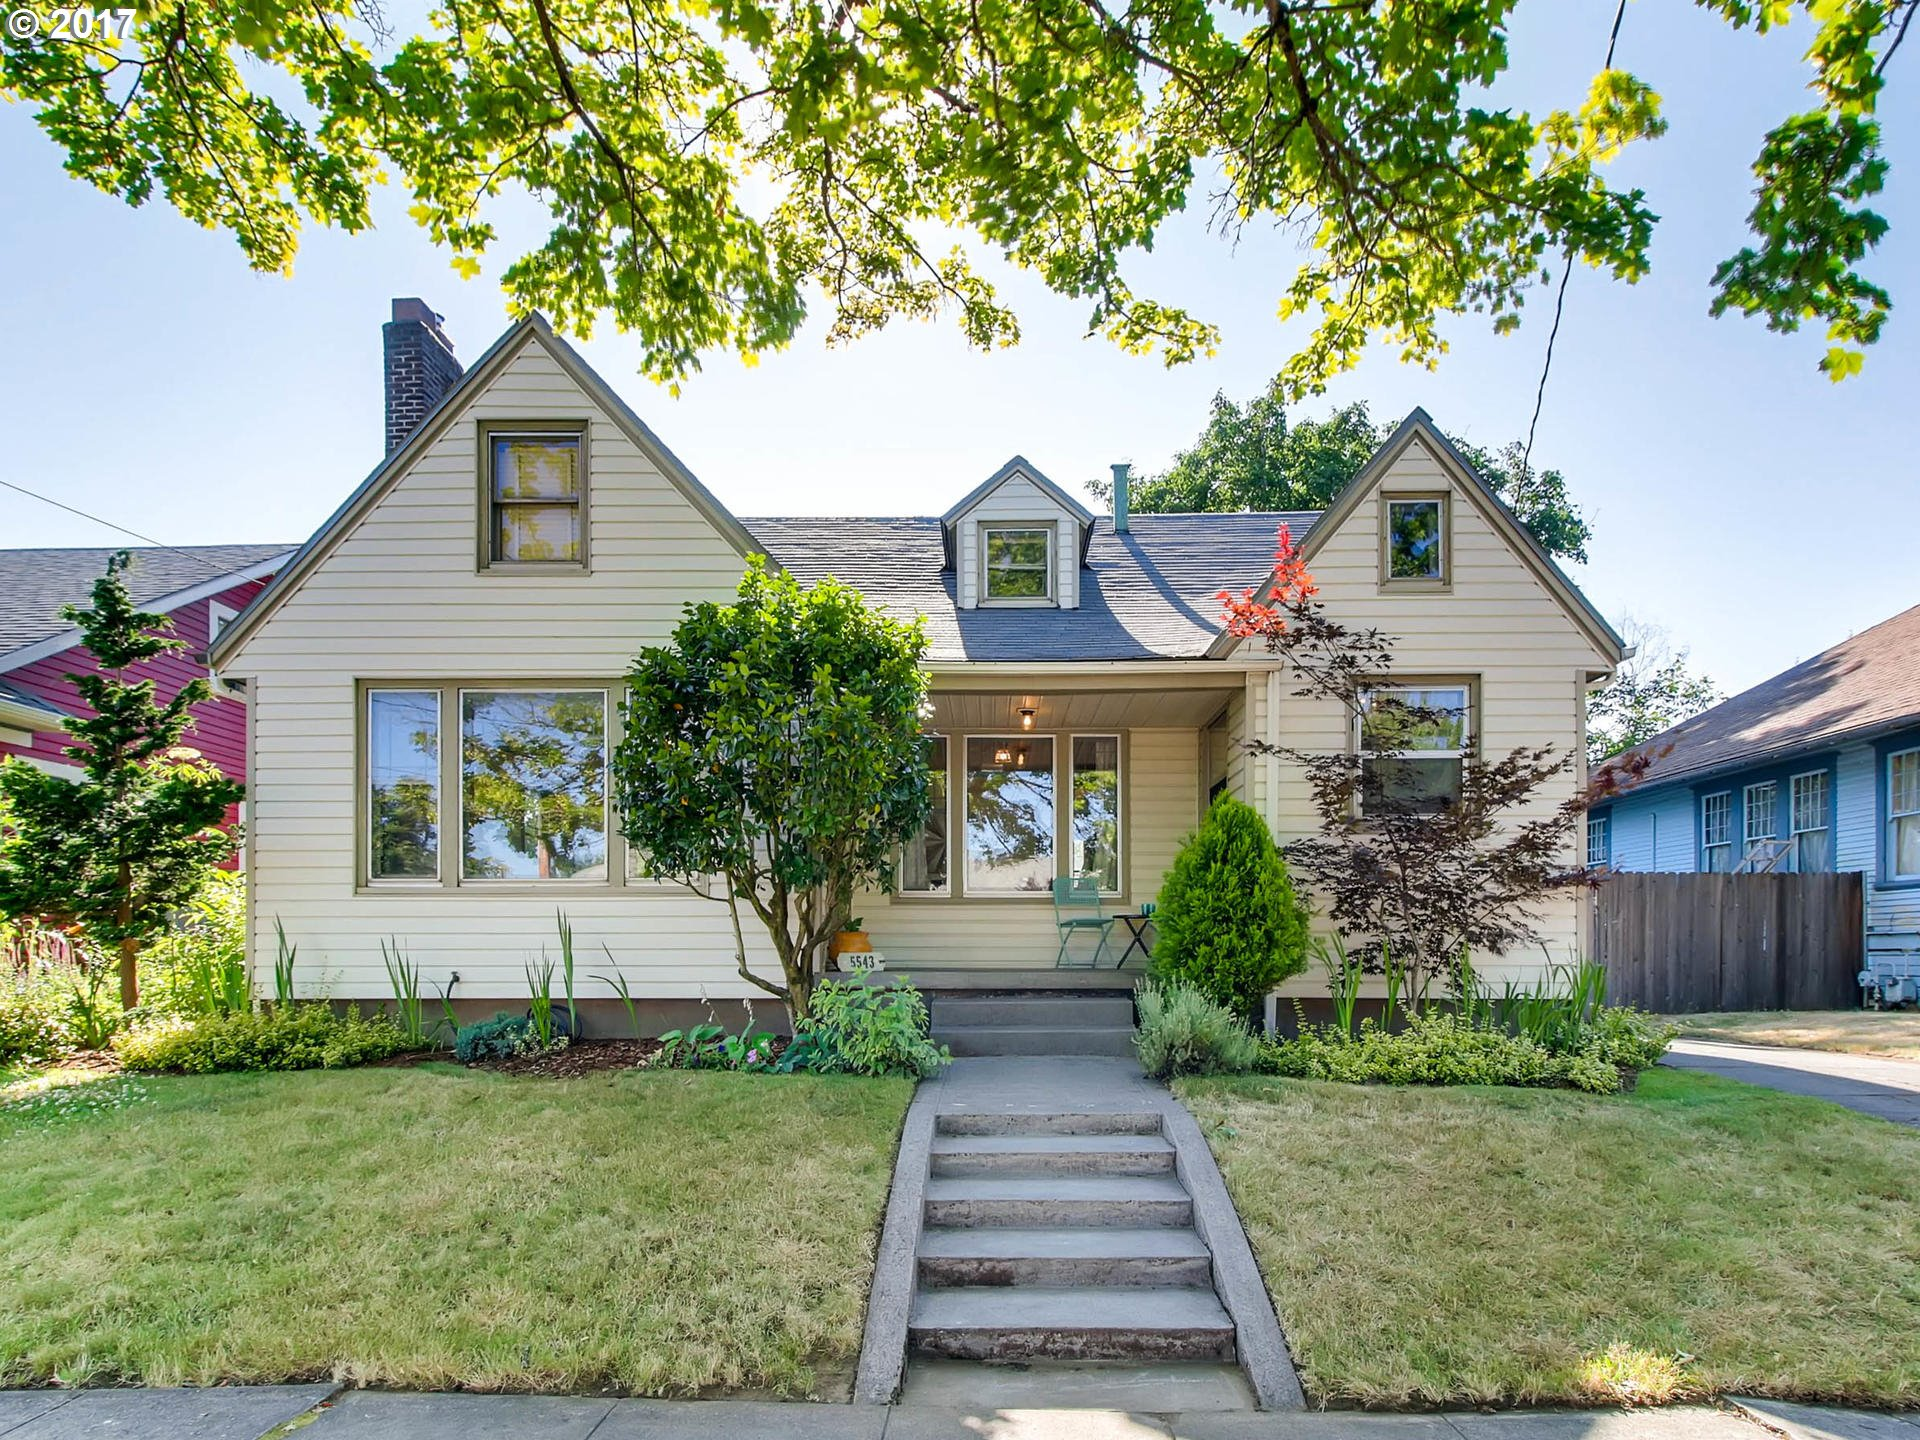 Ideally located, charming Tudor. Orig details incl. frpl in LR, blt-ins, wood flrs, glass knobs. Opportunity to personalize with updates. Lg yard with extended driveway=guaranteed parking in destination nbrhd. ADU potential in spacious finished basement. Restaurants, shopping, groceries, recreation right out your front door! Max Yellow line & Tri-met, easy I-5 access, 10 min to downtown. Biker's Paradise score 99!